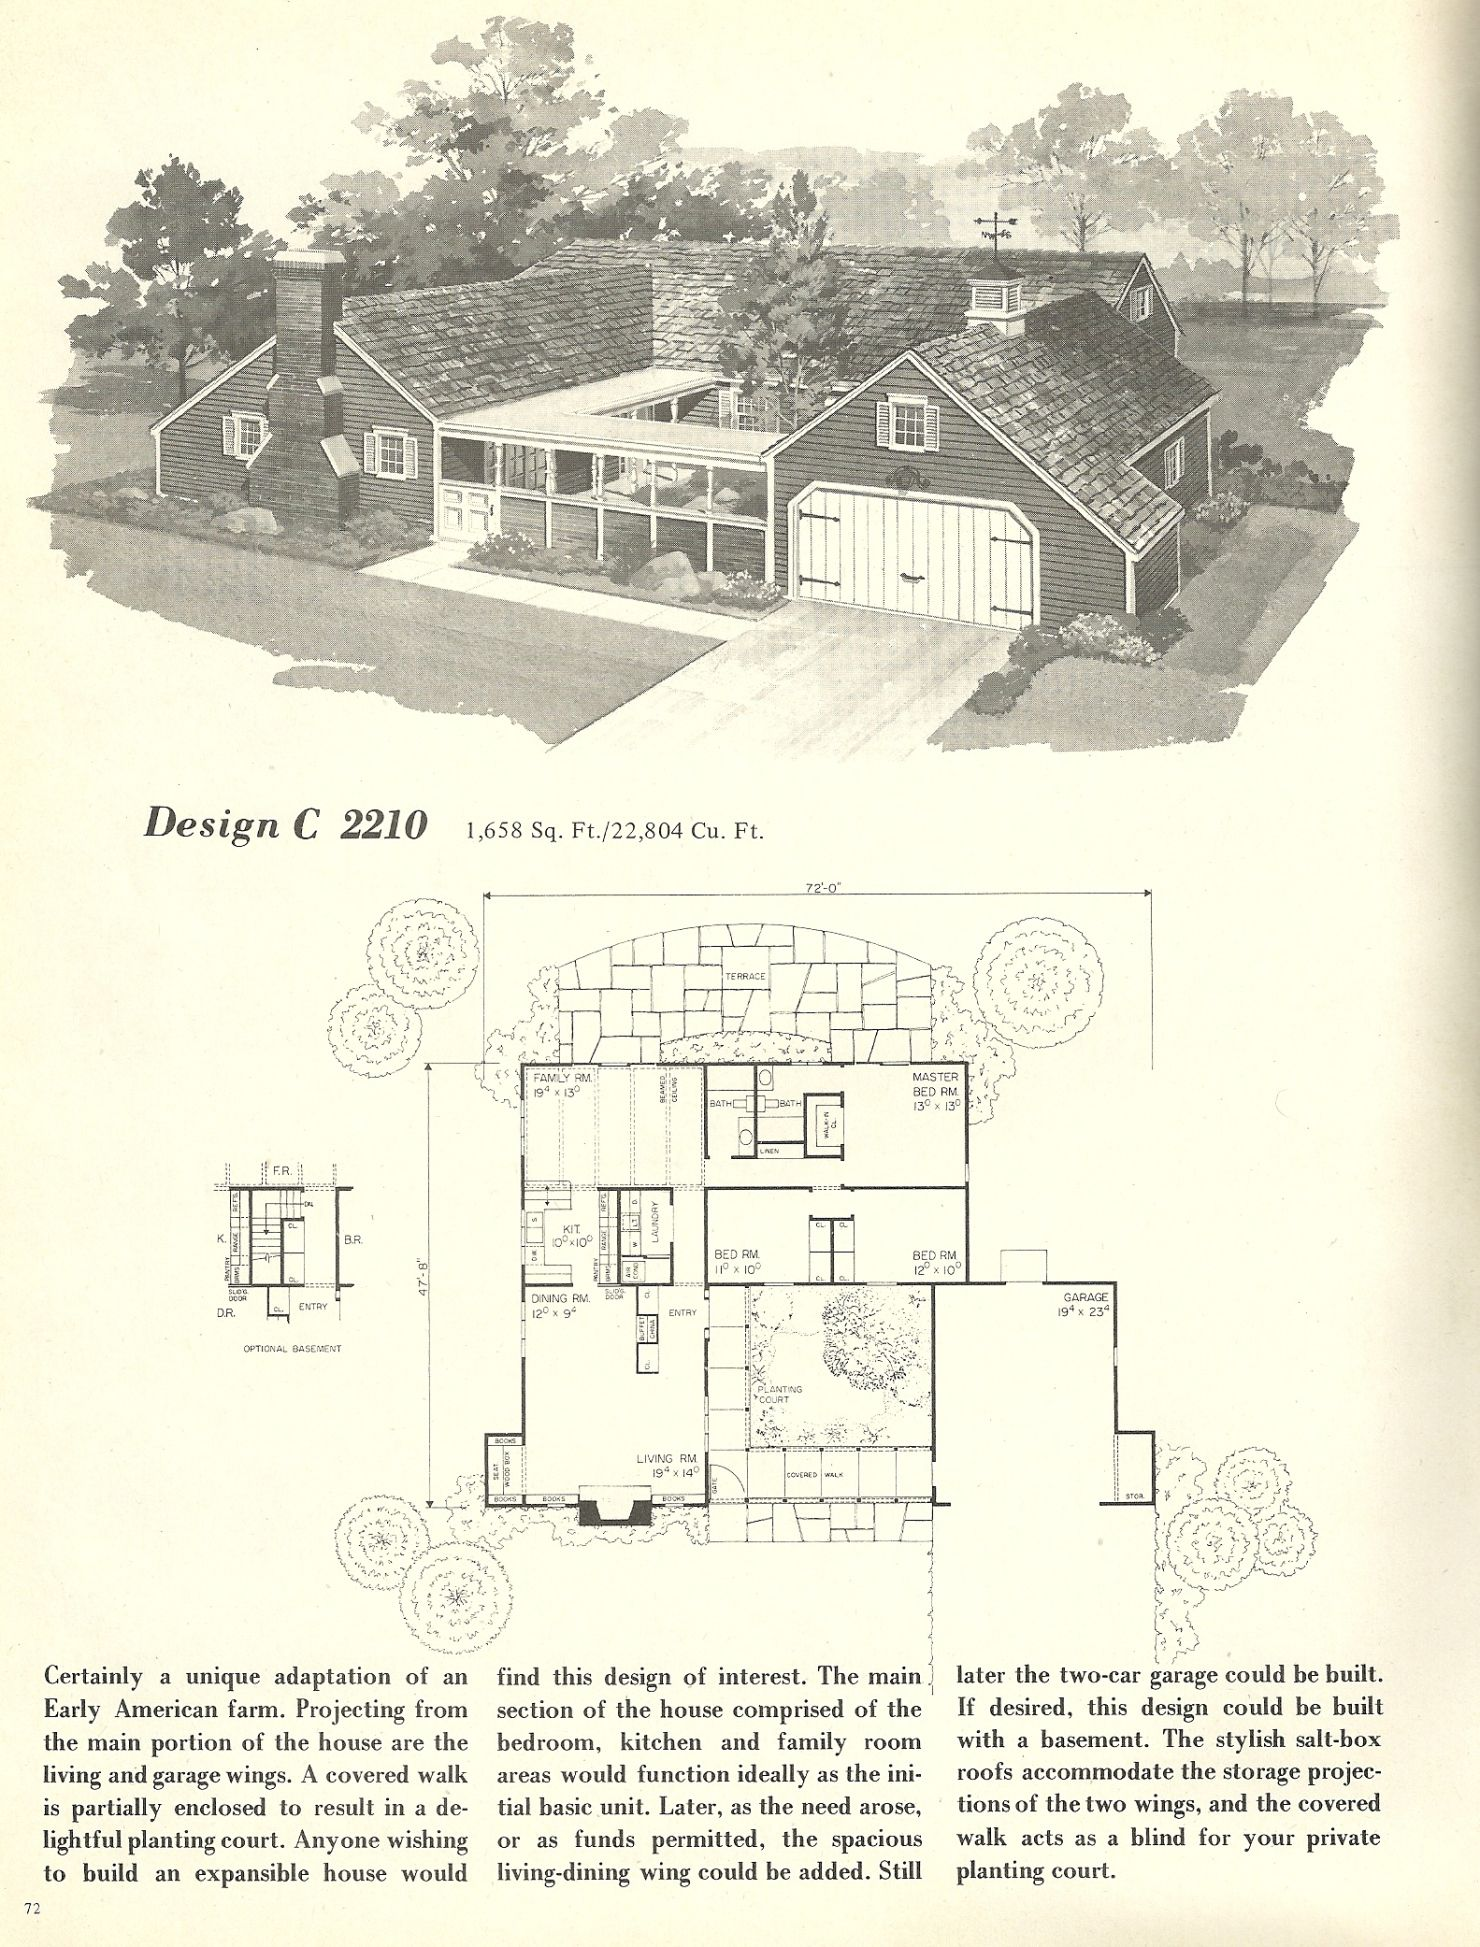 Vintage House Plans 1960s: Spanish Style and Mid Century ...